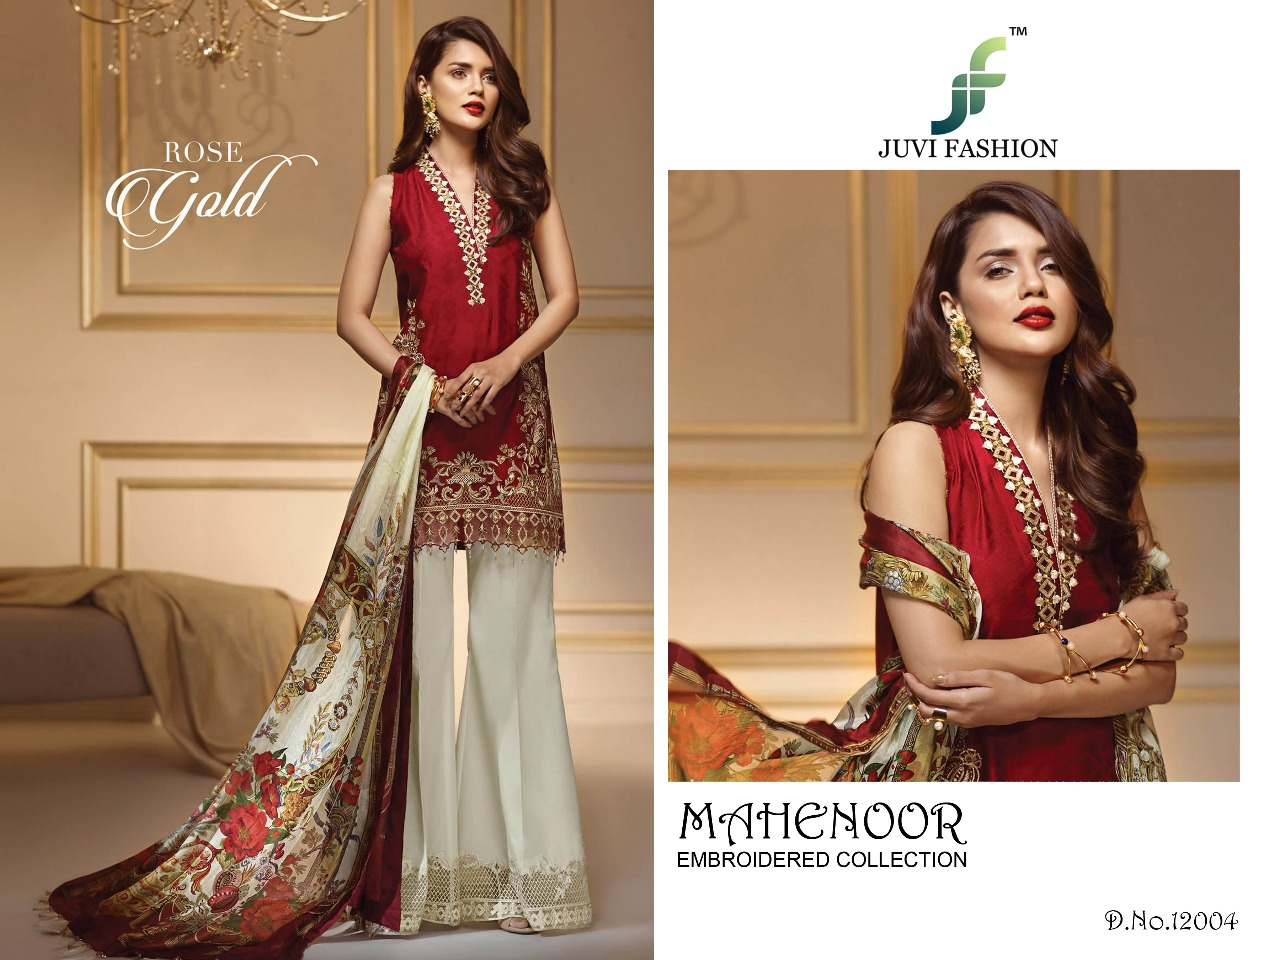 Juvi Fashion Mahenoor Embroidered Collection 12004